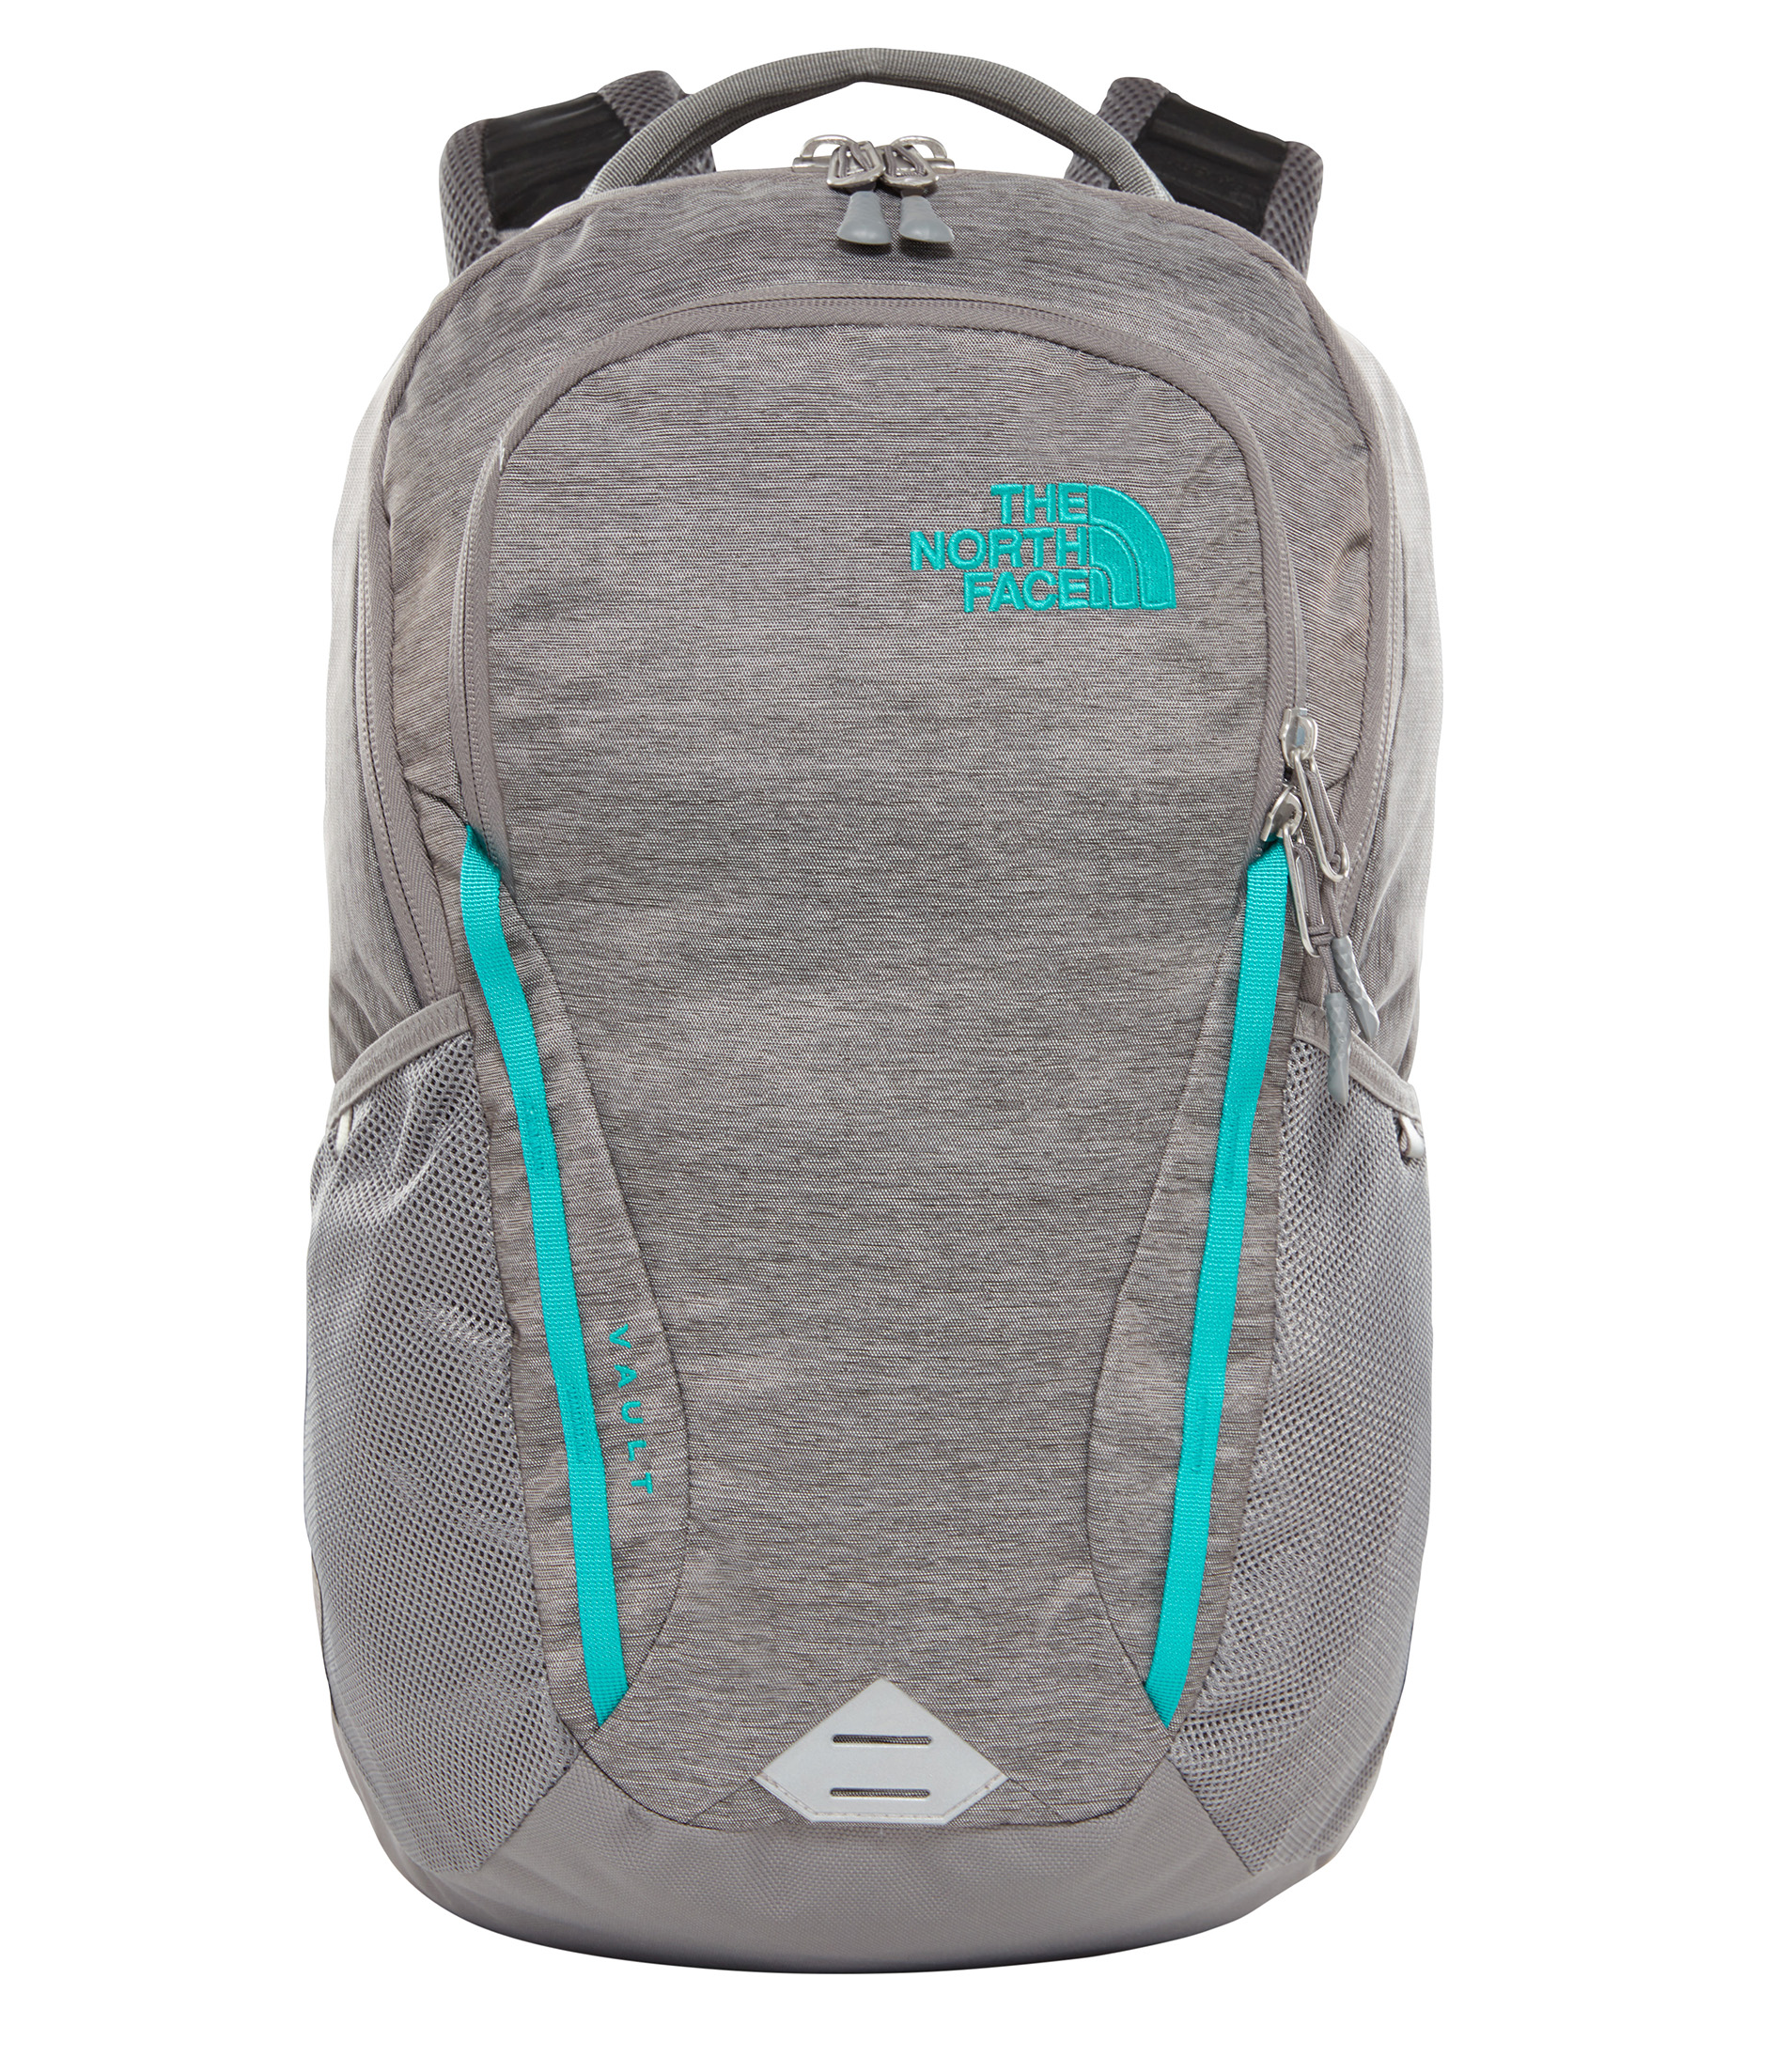 THE NORTH FACE W VAULT, ZINC GREY LIGHT velikost: OS